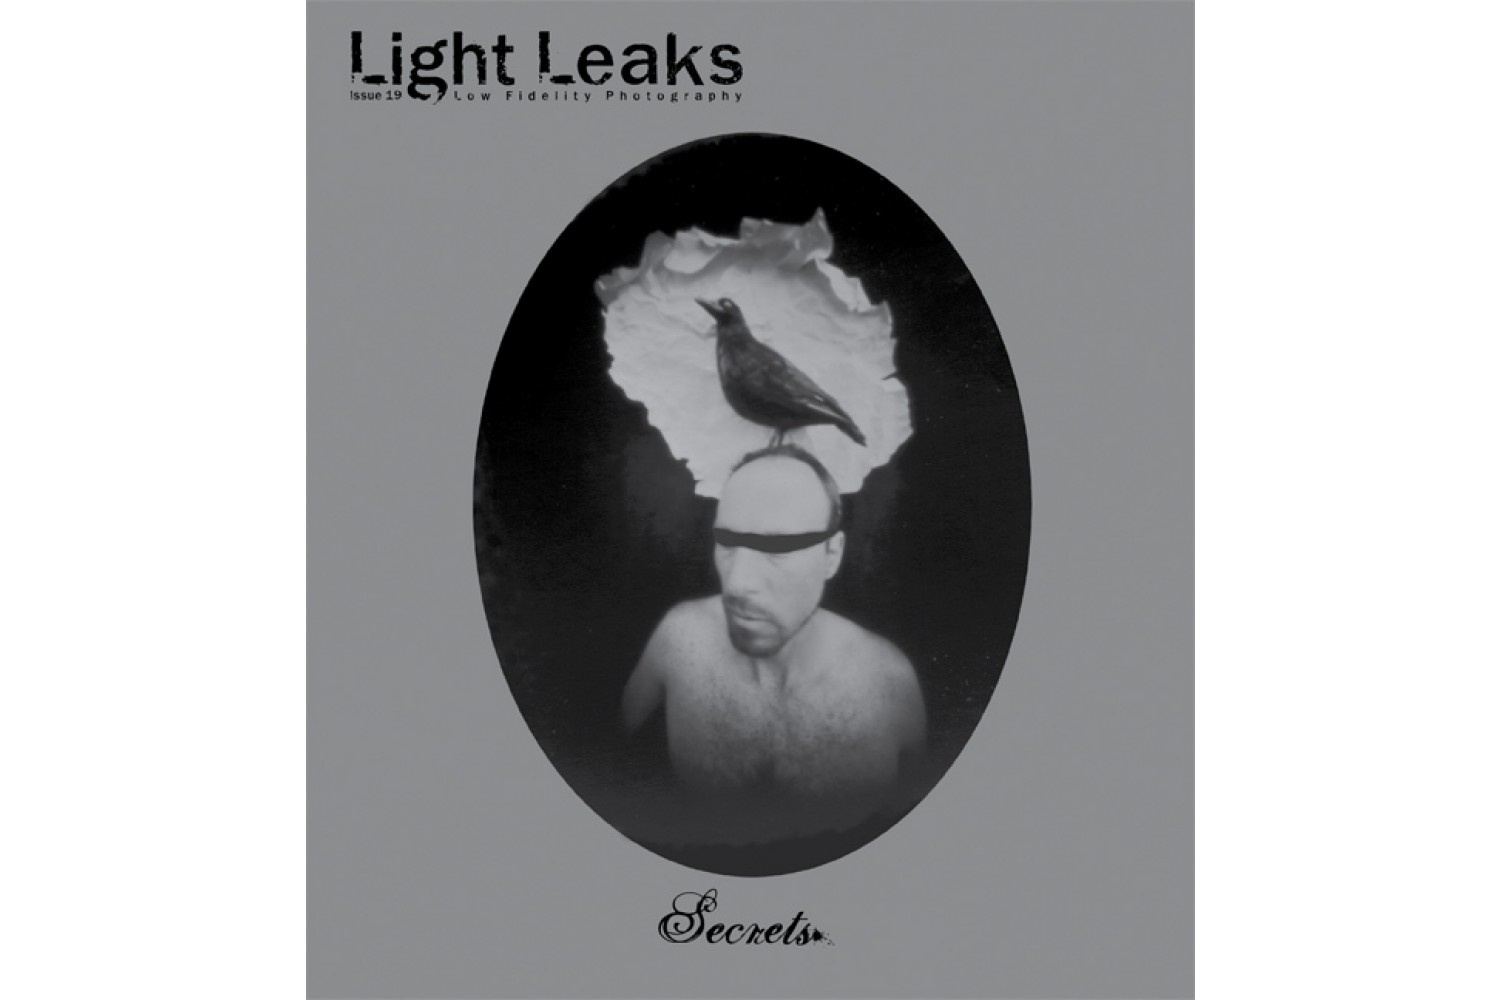 Light Leaks Magazine: Issue 19